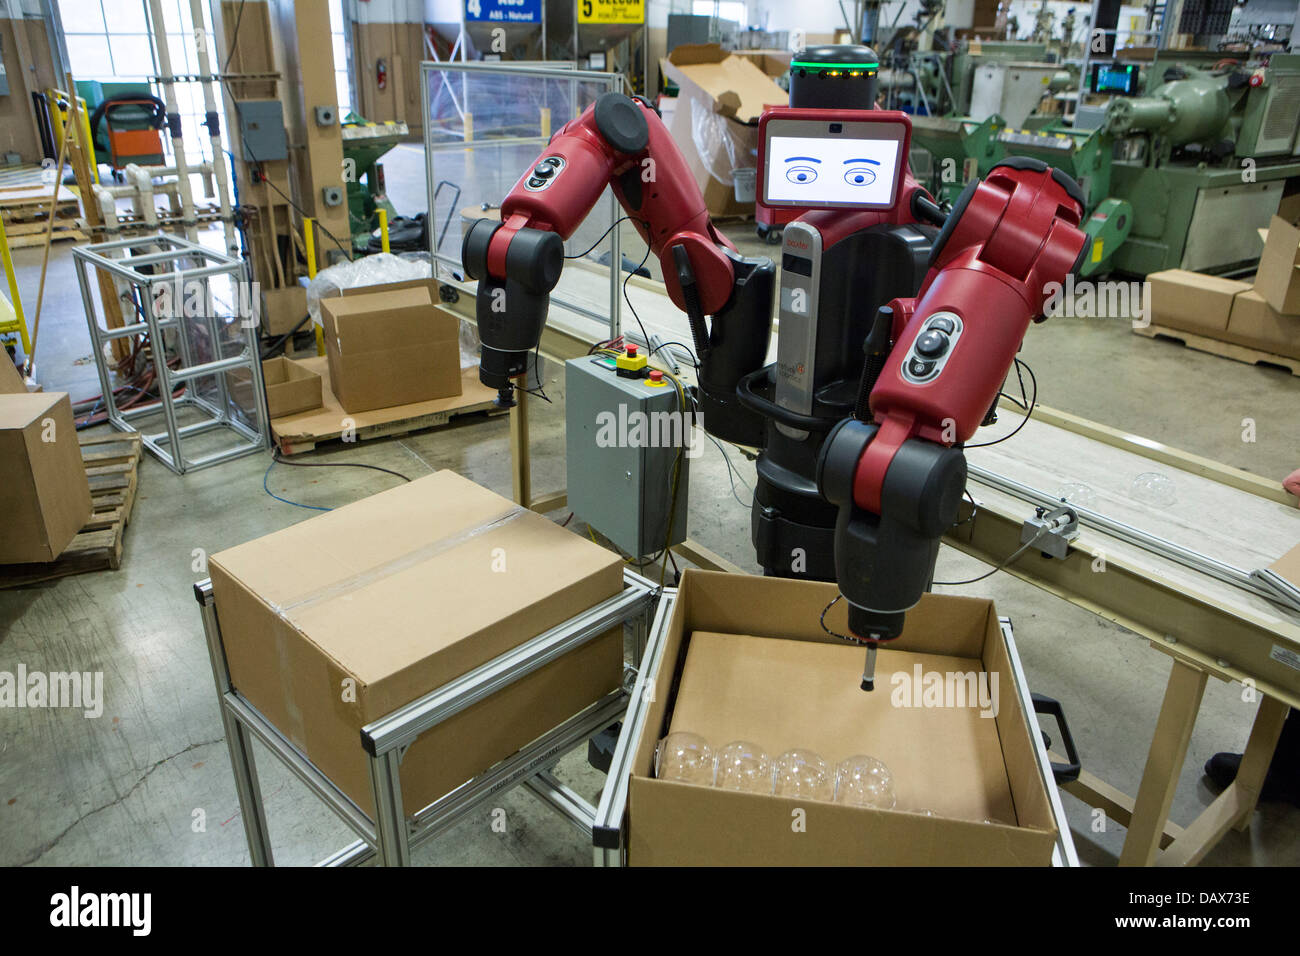 Baxter the robot made by Rethink Robotics at the Rodon Group plastic molding factory.  - Stock Image